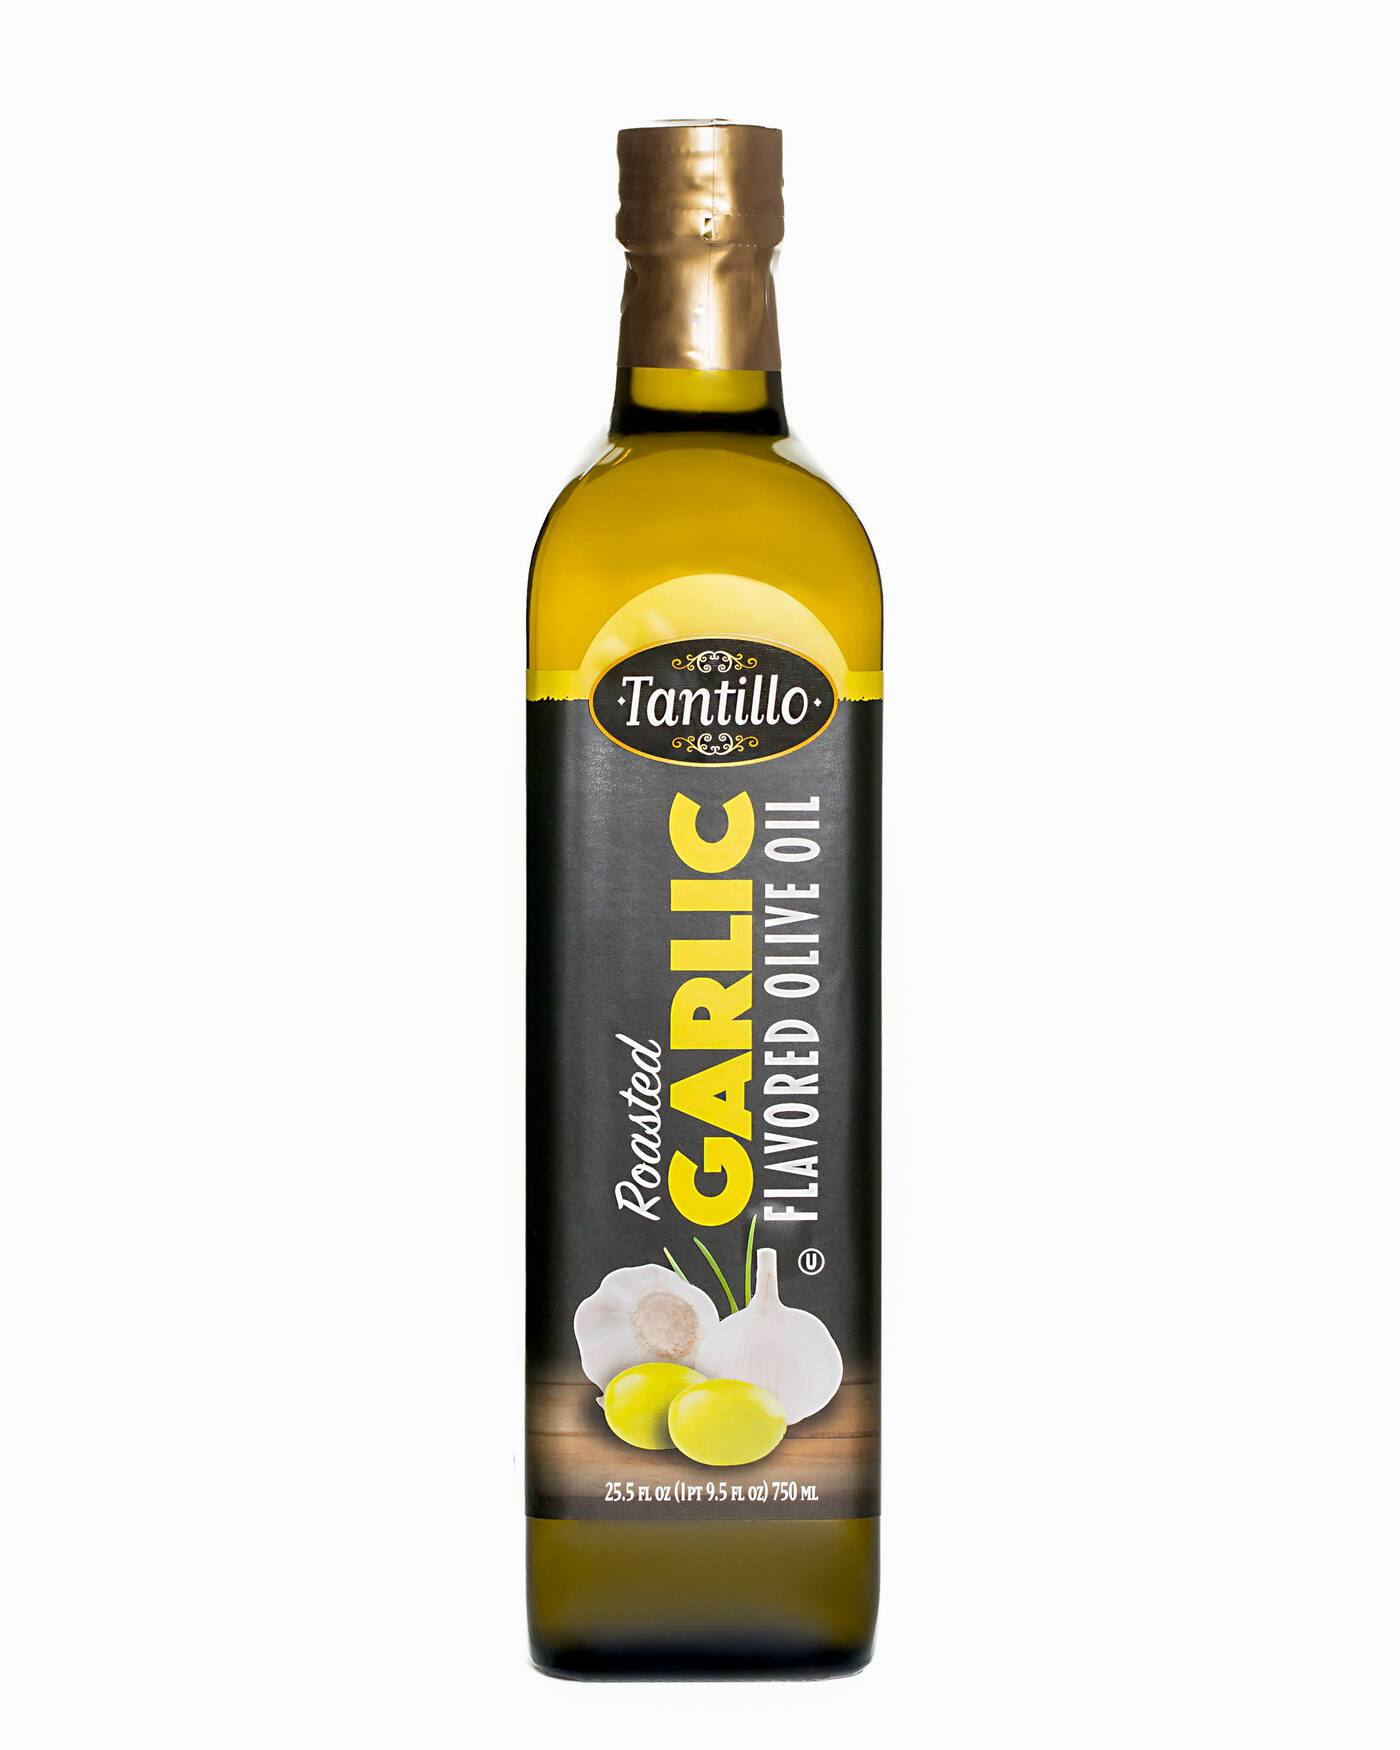 Tantillo Roasted Garlic Flavored Olive Oil – 750ml